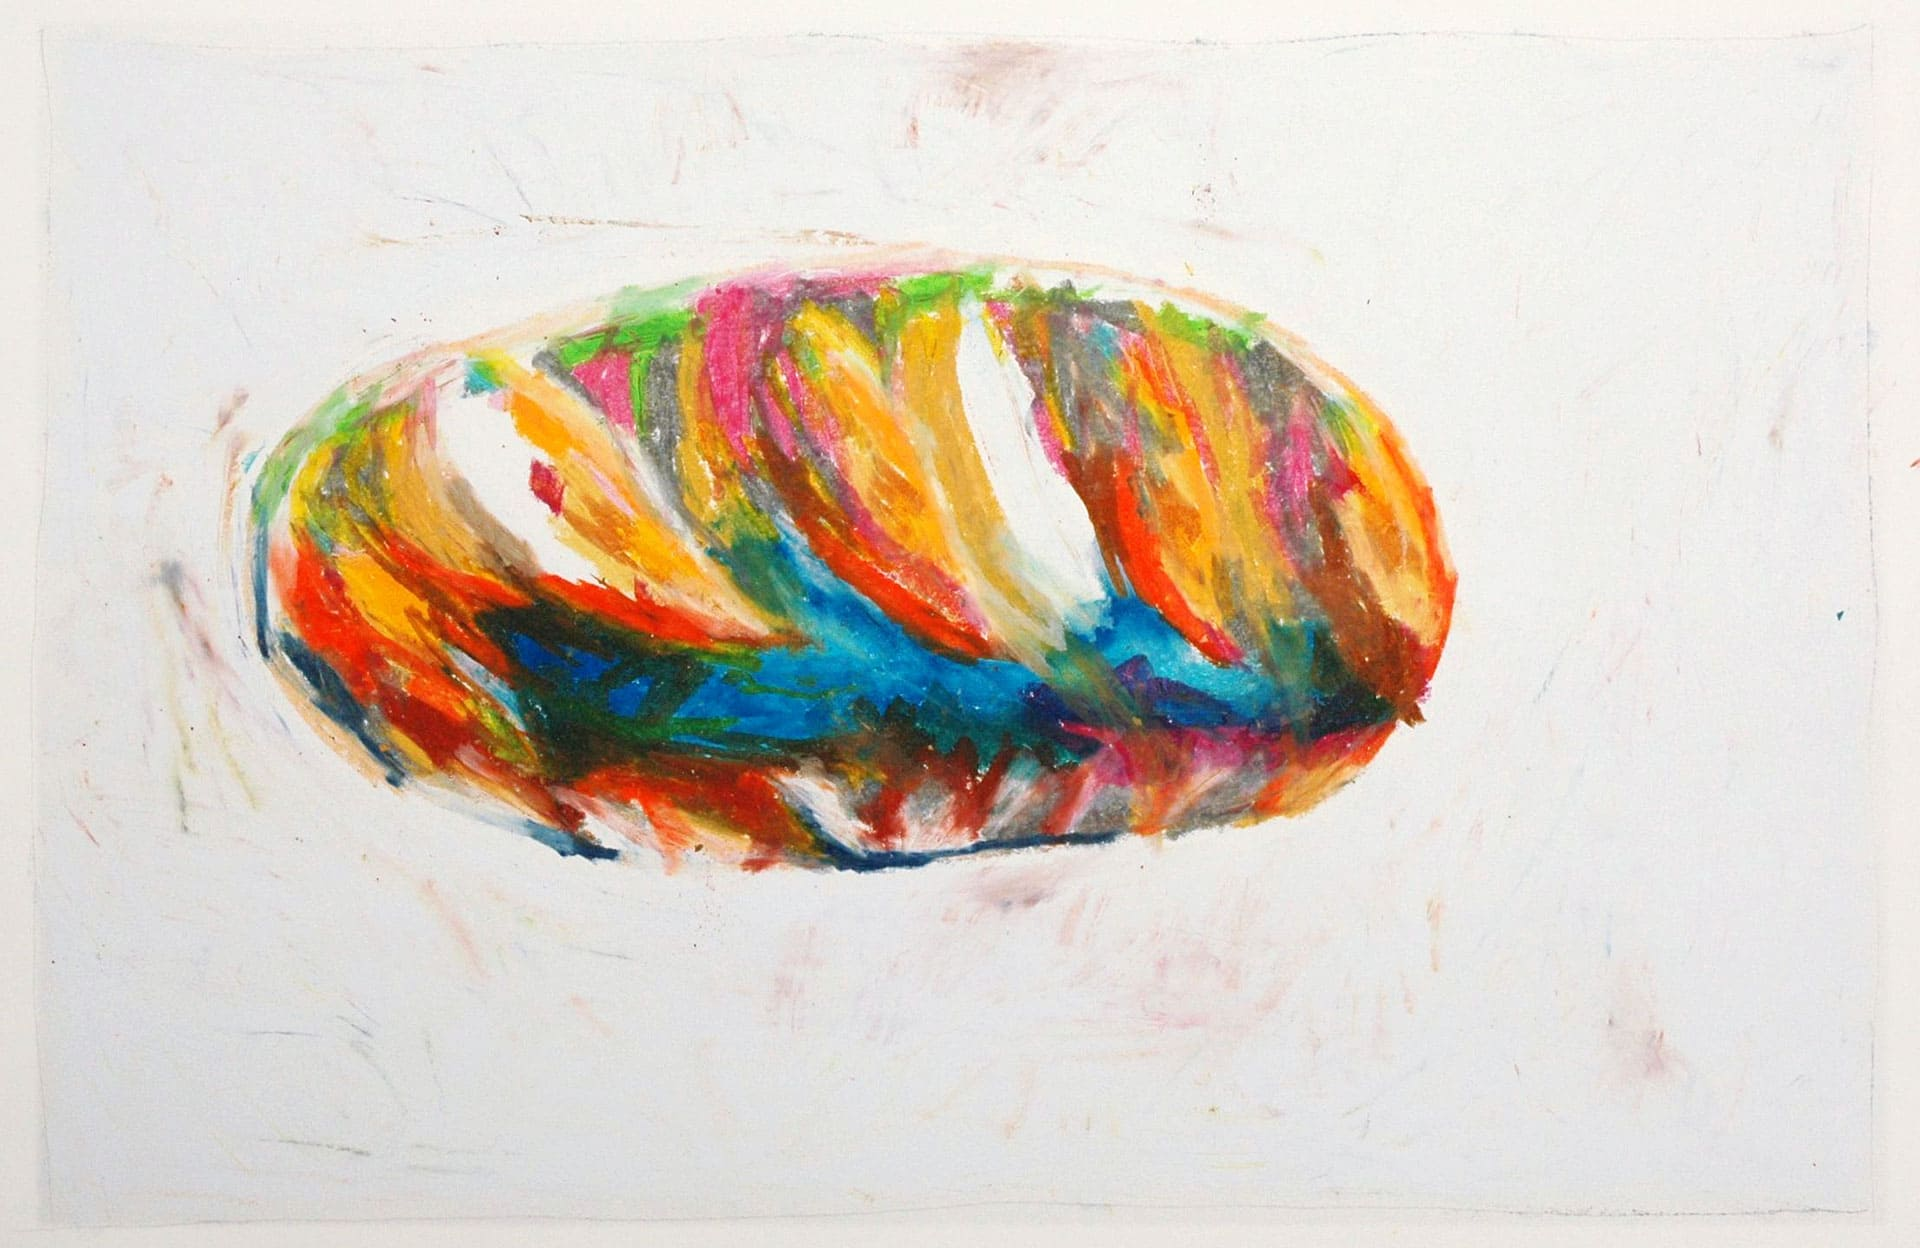 Paradies Brot   The Becoming of Bread   Angelika Beuler   2014